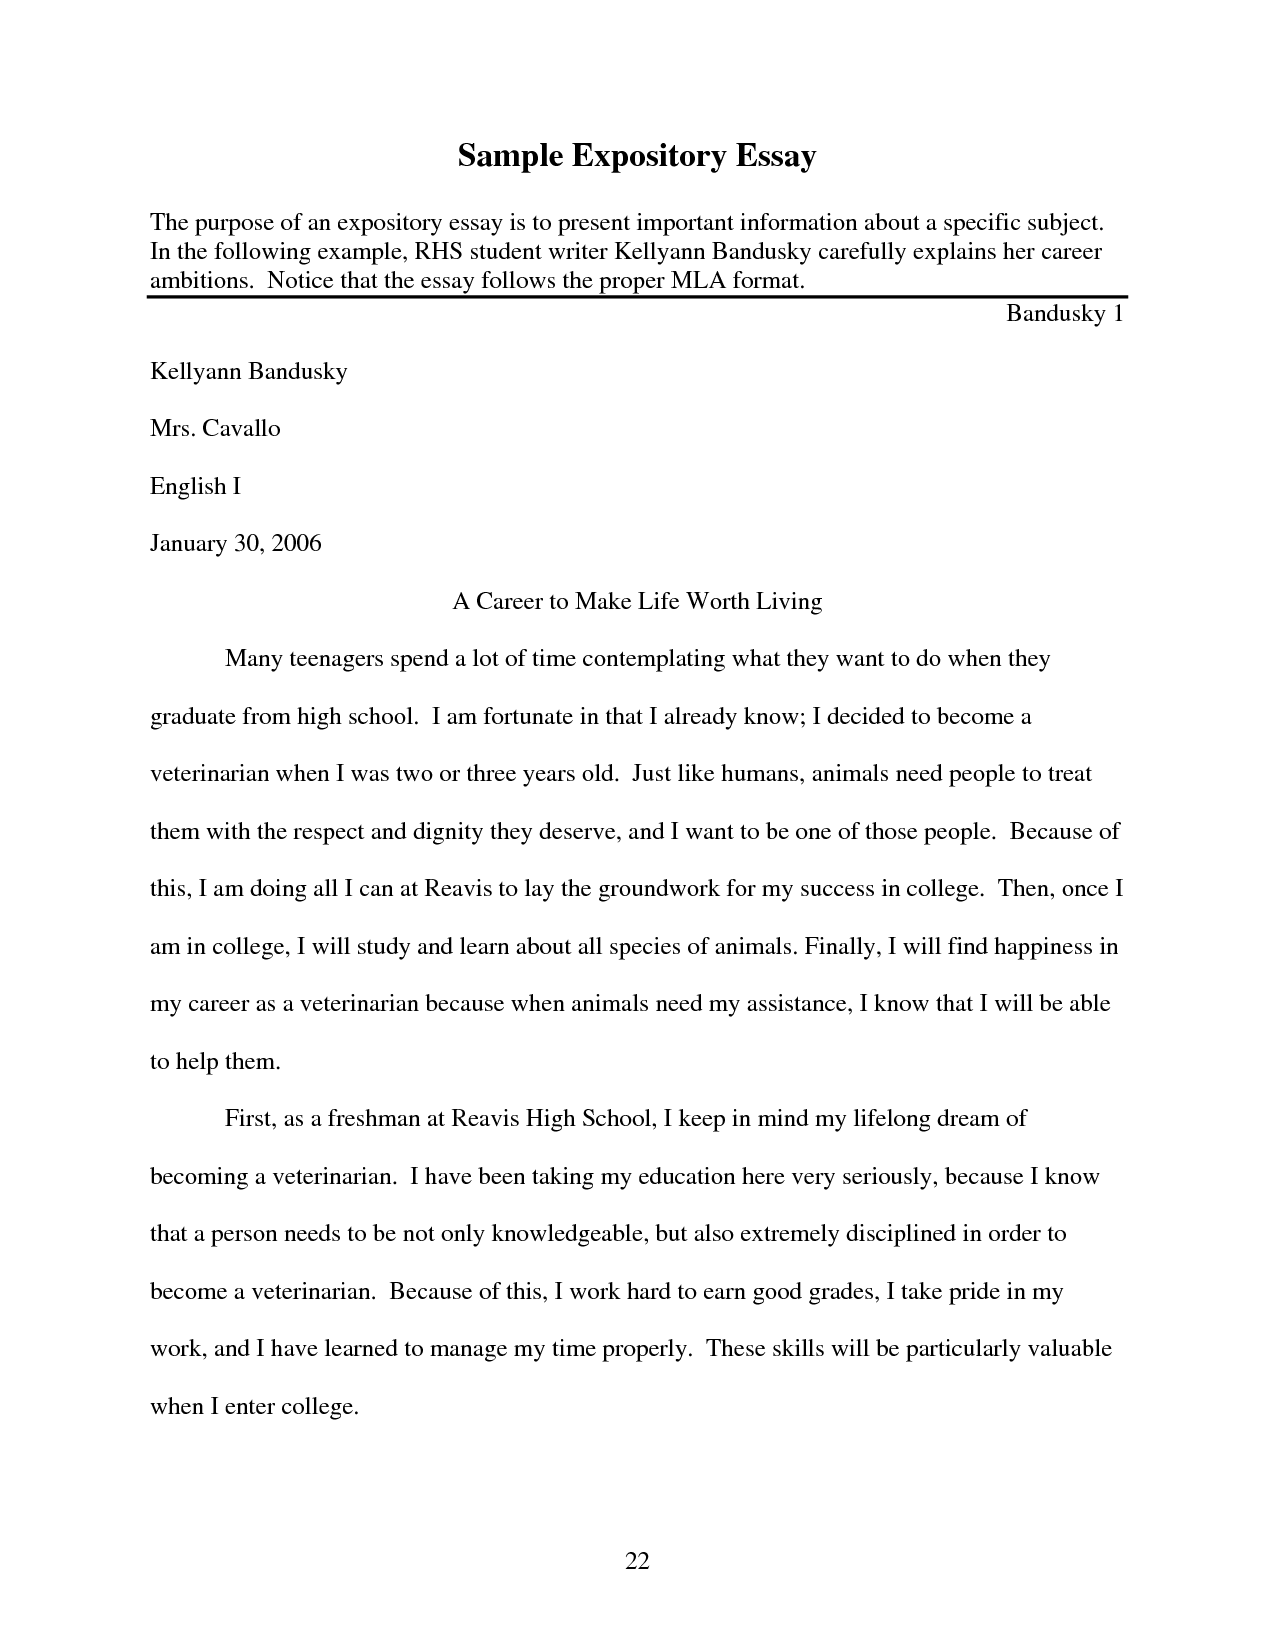 005 Example Of Expository Writing Essay Good Cover Letter Samples Introduction Feria Educacional How To Write An Frightening Informational Informative 6th Grade 7th Thesis Full